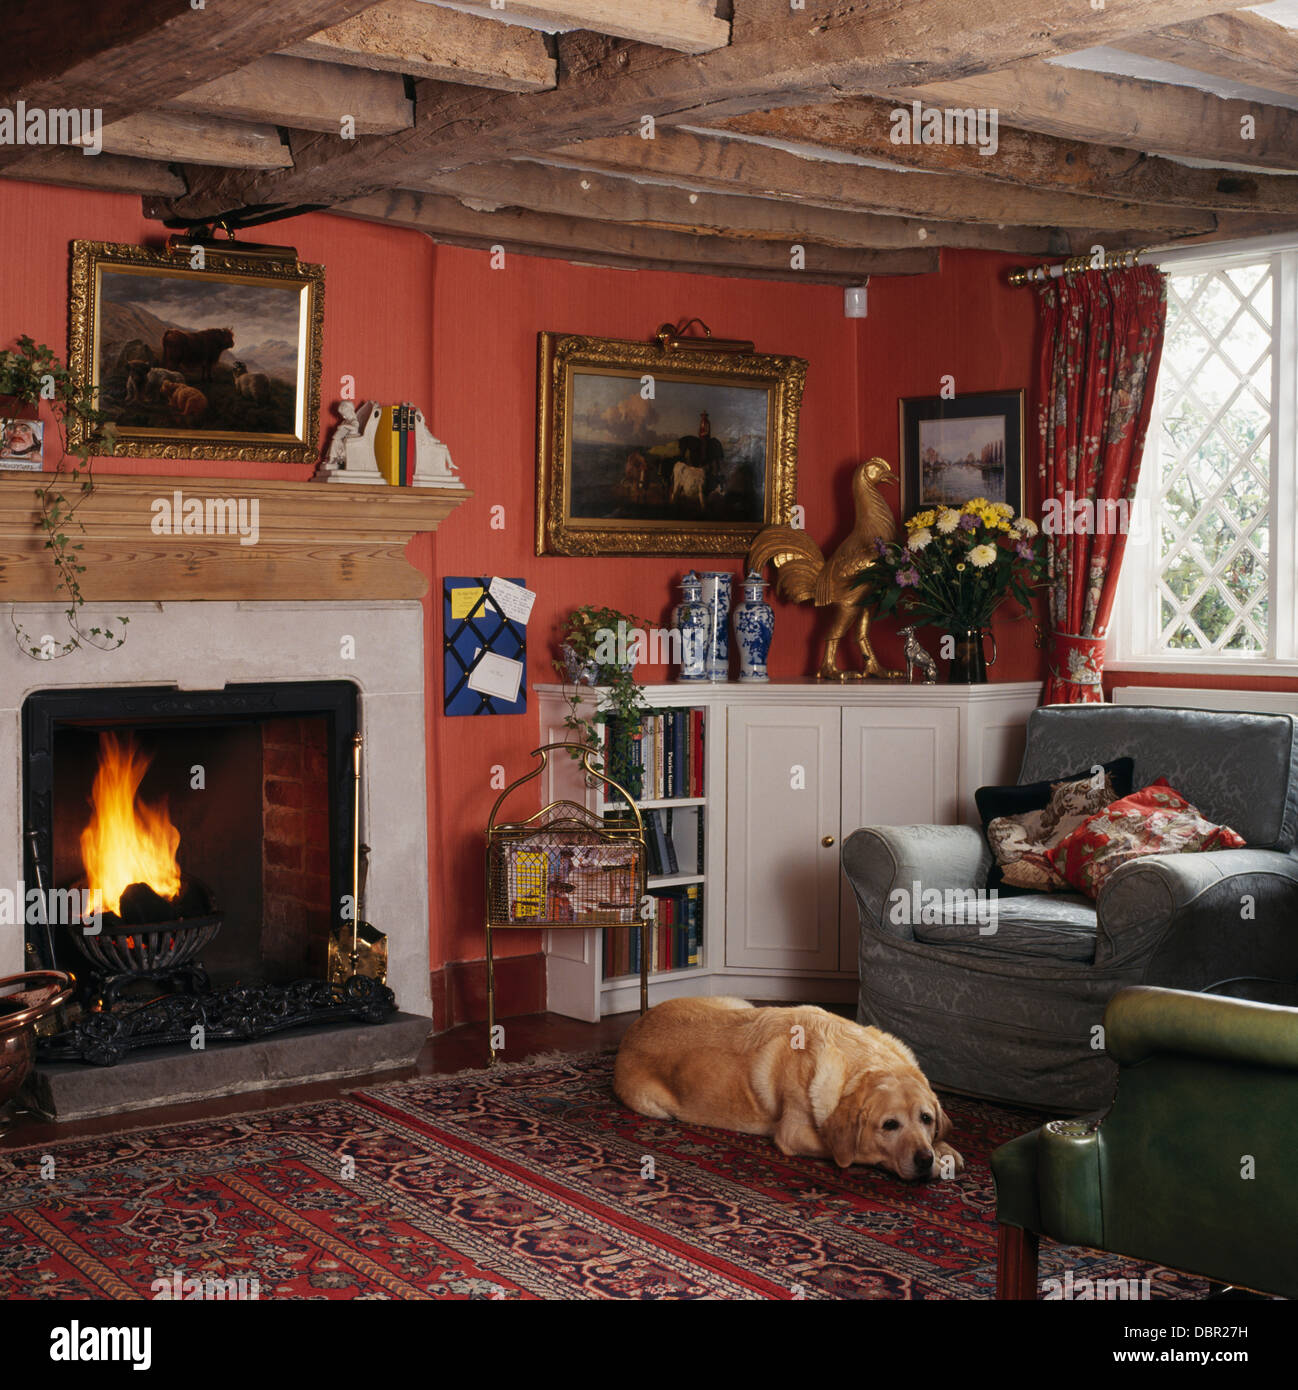 Labrador Dog Lying On Carpet In Front Of Fireplace With